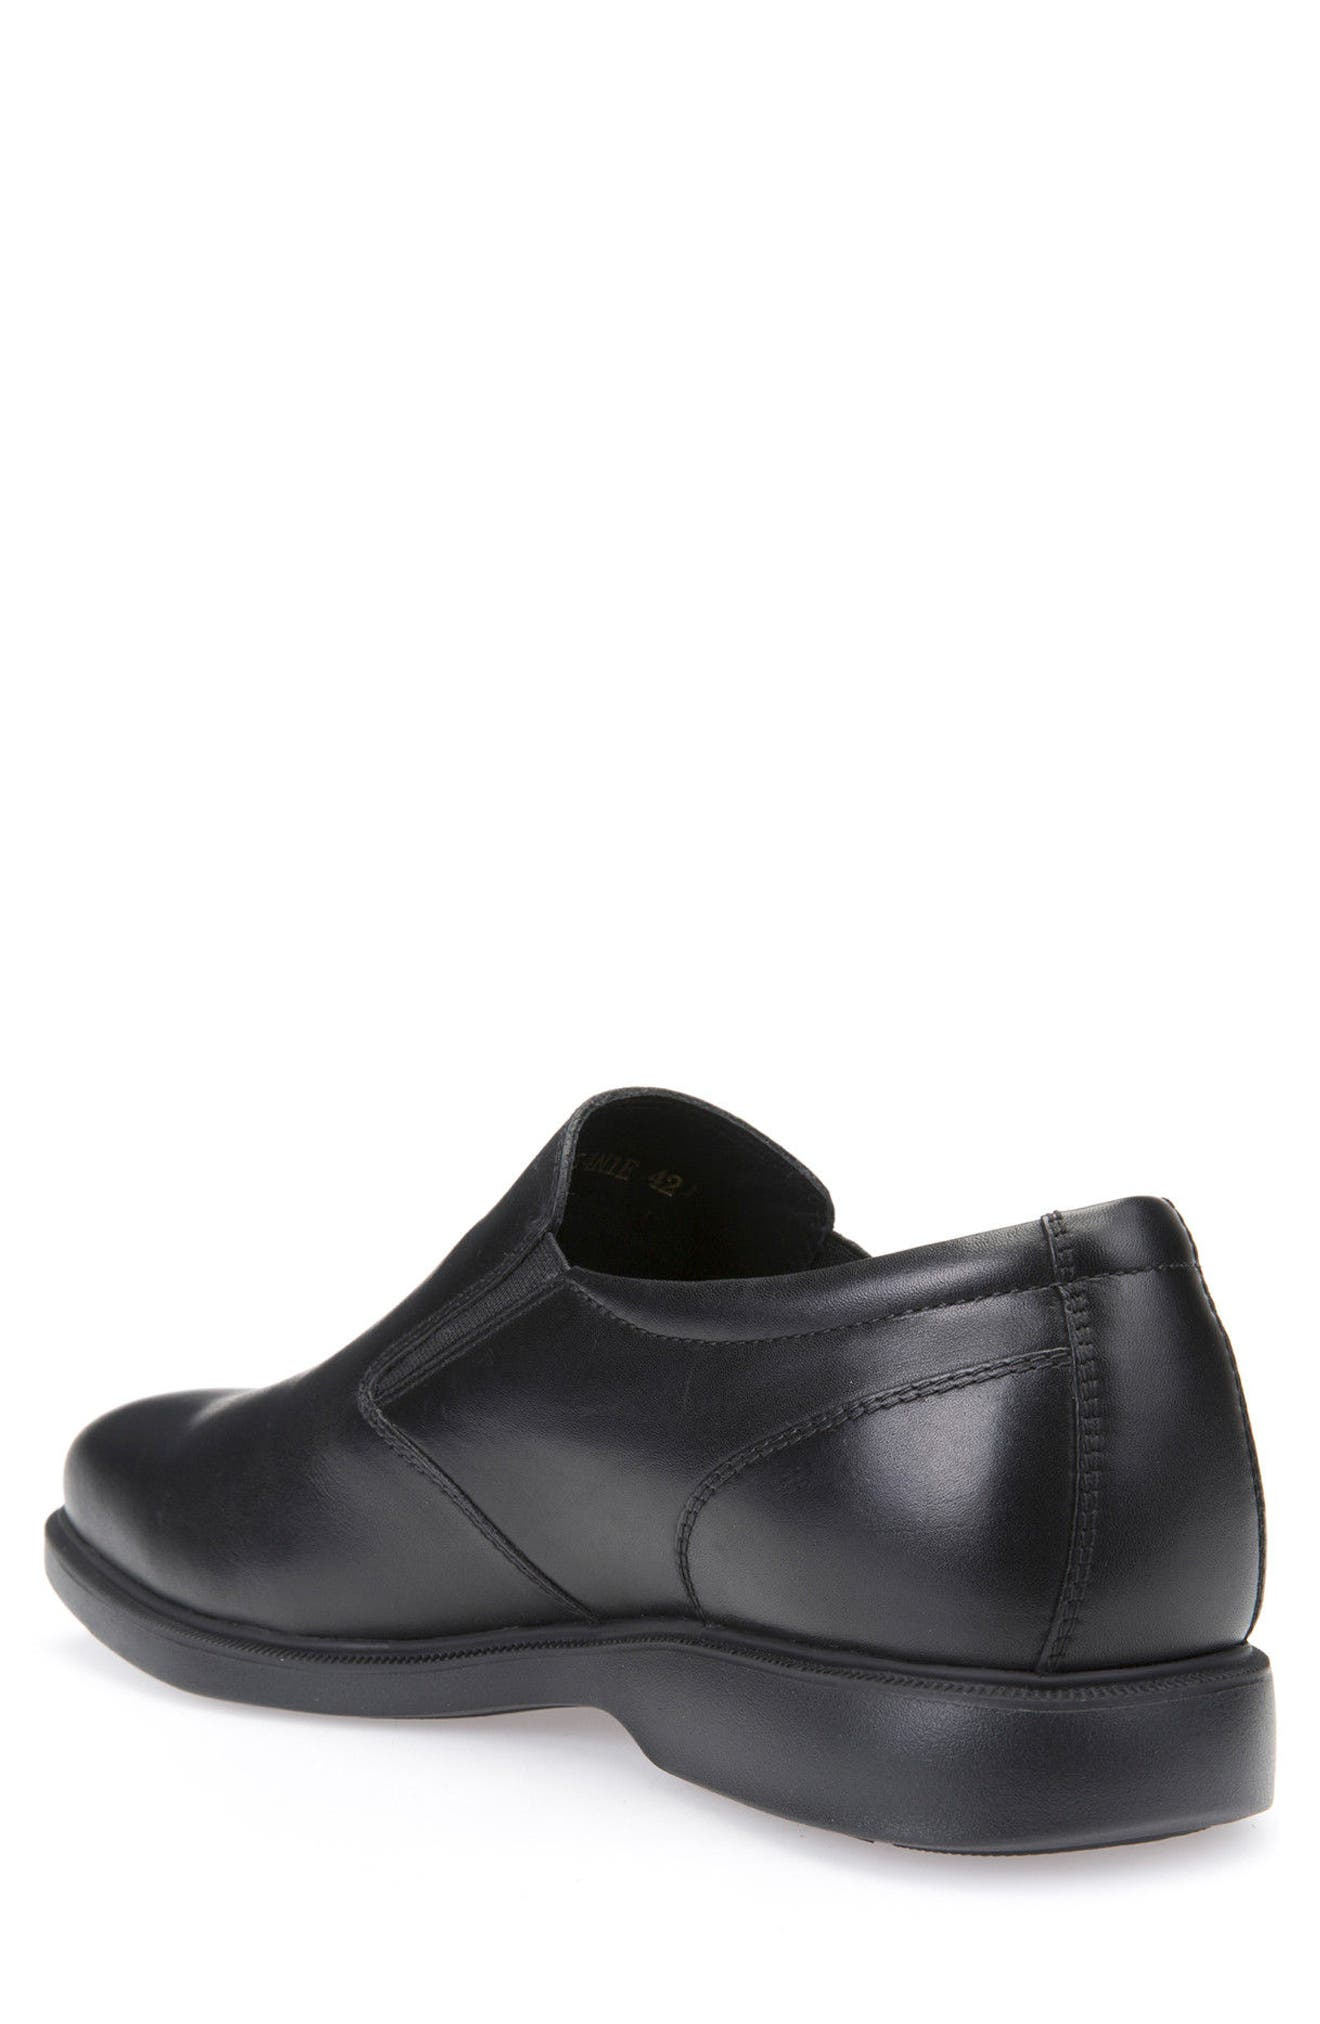 Alternate Image 2  - Geox Brayden ABX Waterproof Venetian Loafer (Men)